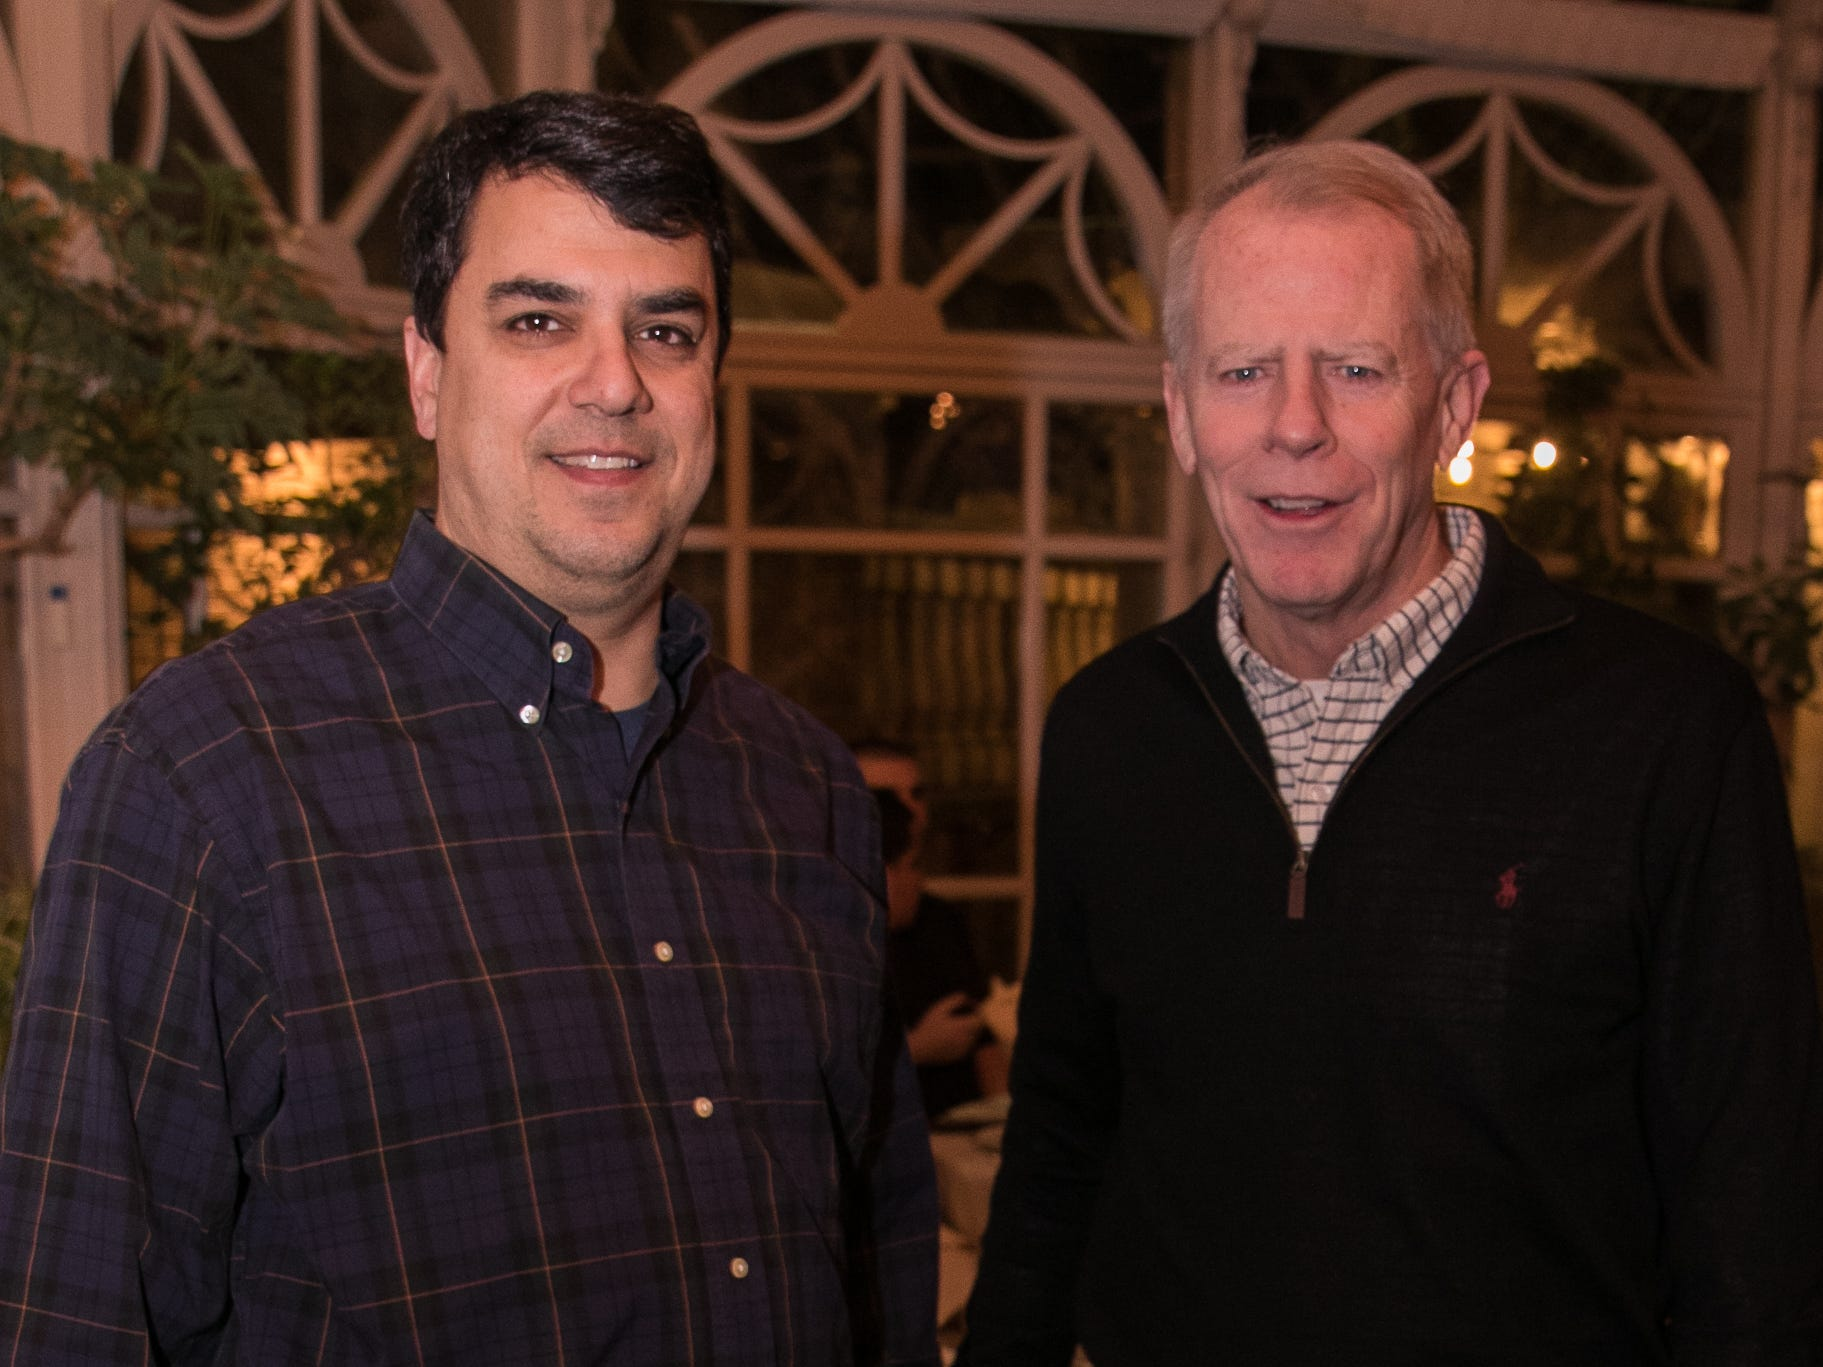 Paul Gagano, Kevin Cochran. Rebuilding Together North Jersey held its third annual Beefsteak Dinner with former NY Giants Howard Cross, Amani Toomer, and Sam Garnes at the Brownstone in Paterson. 03/07/2019